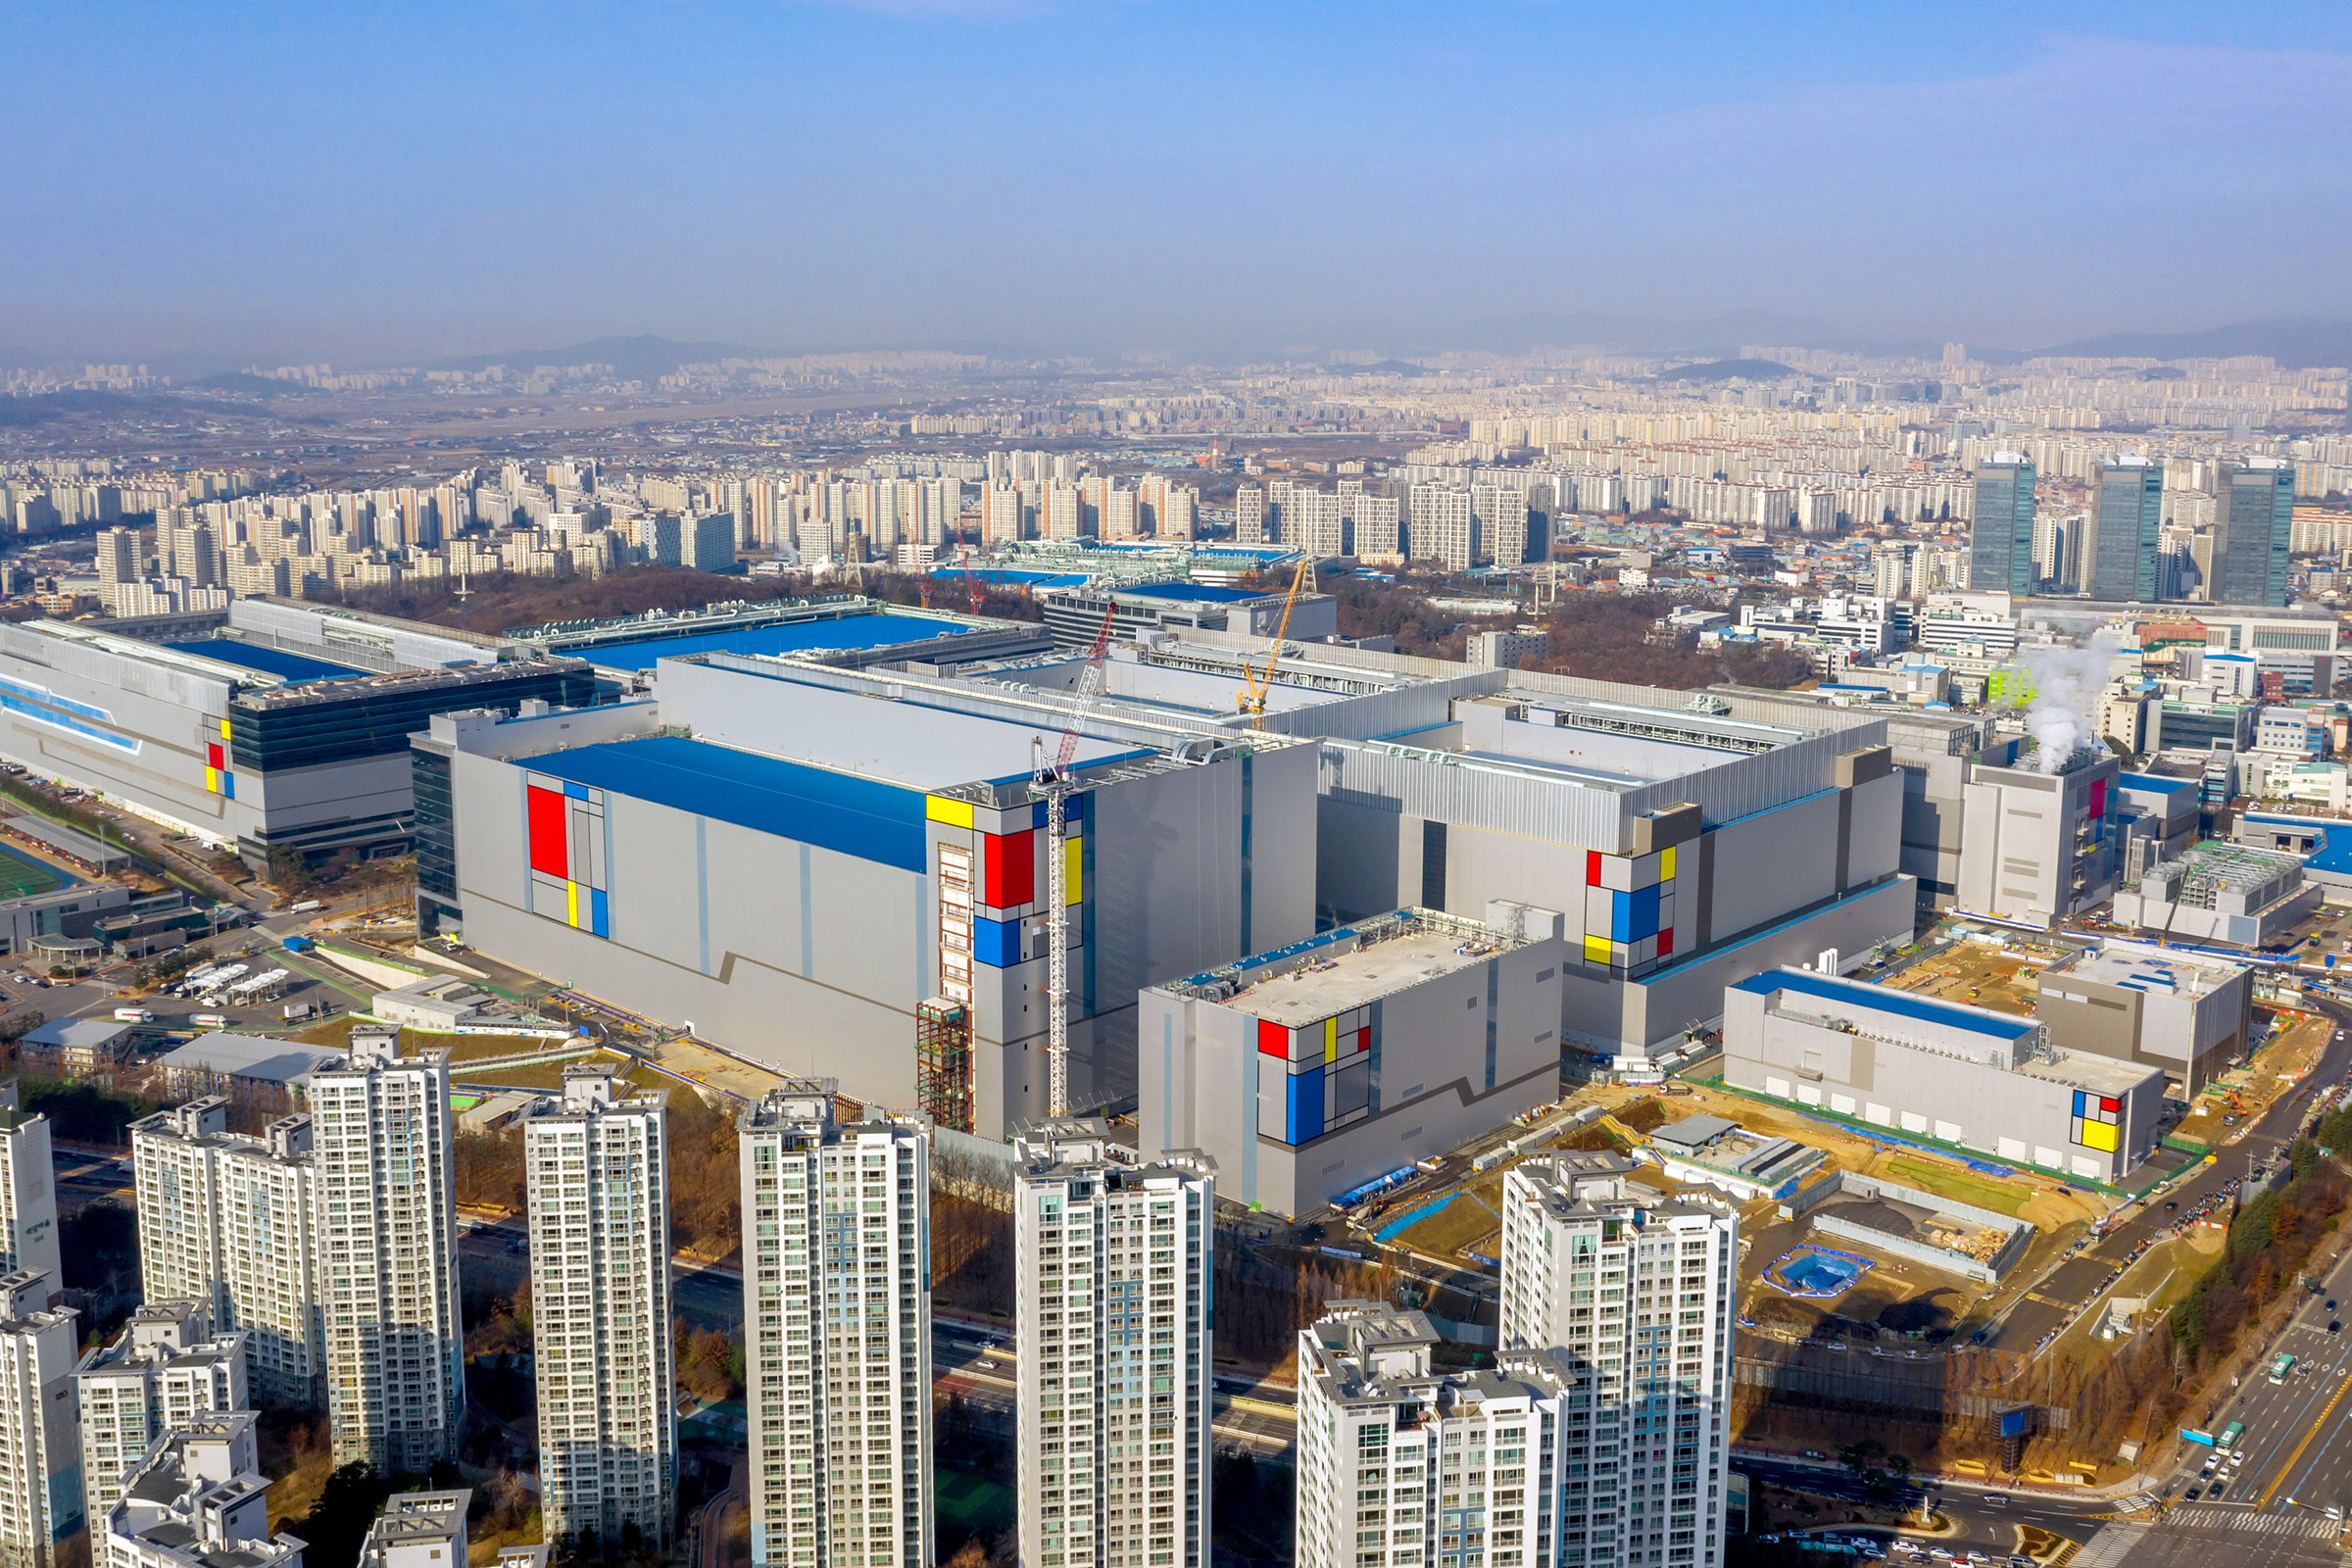 The Samsung Electronics Co. semiconductor manufacturing plant in Gyeonggi Province, South Korea on Dec. 16, 2019.